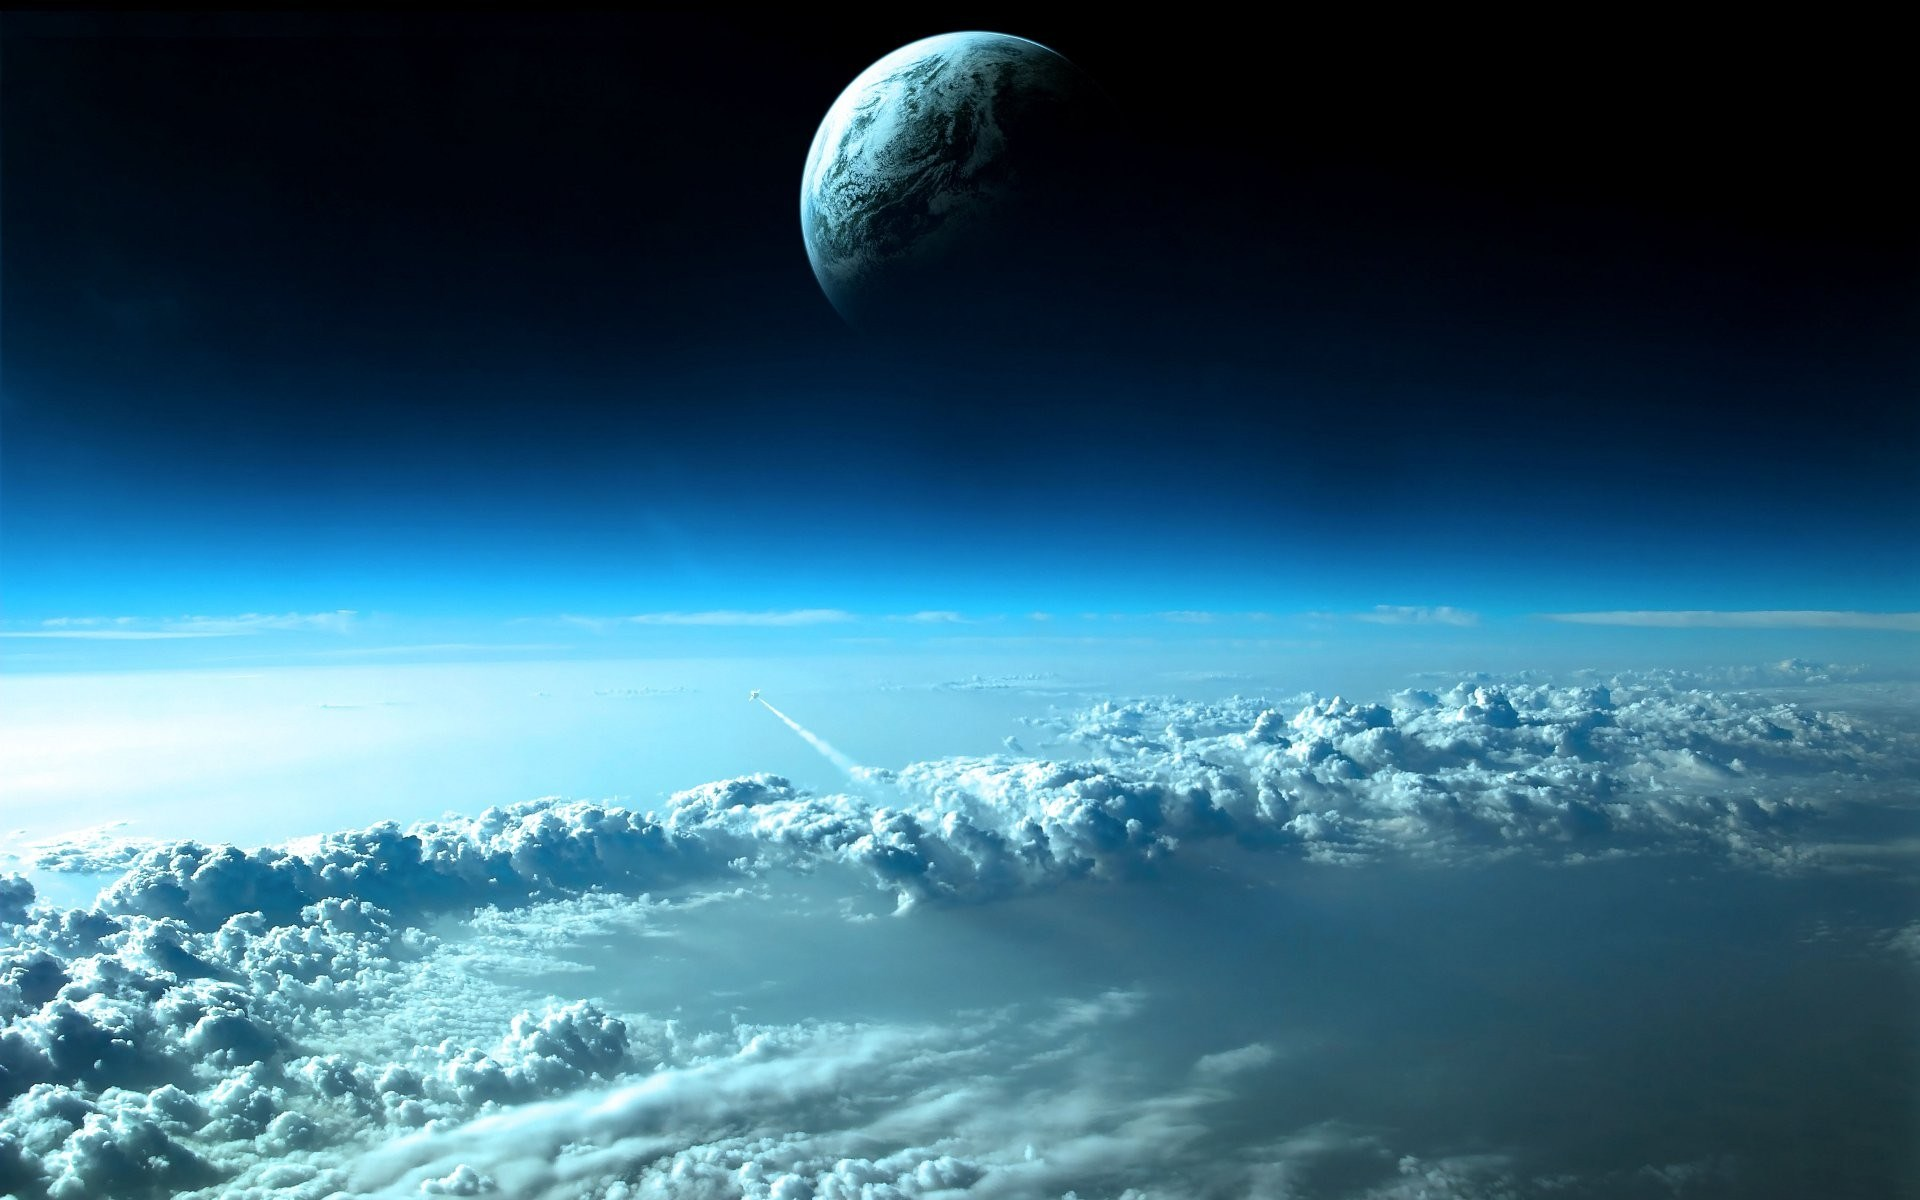 Clouds Outer Space Planets Earth Wallpaper 1920x1200